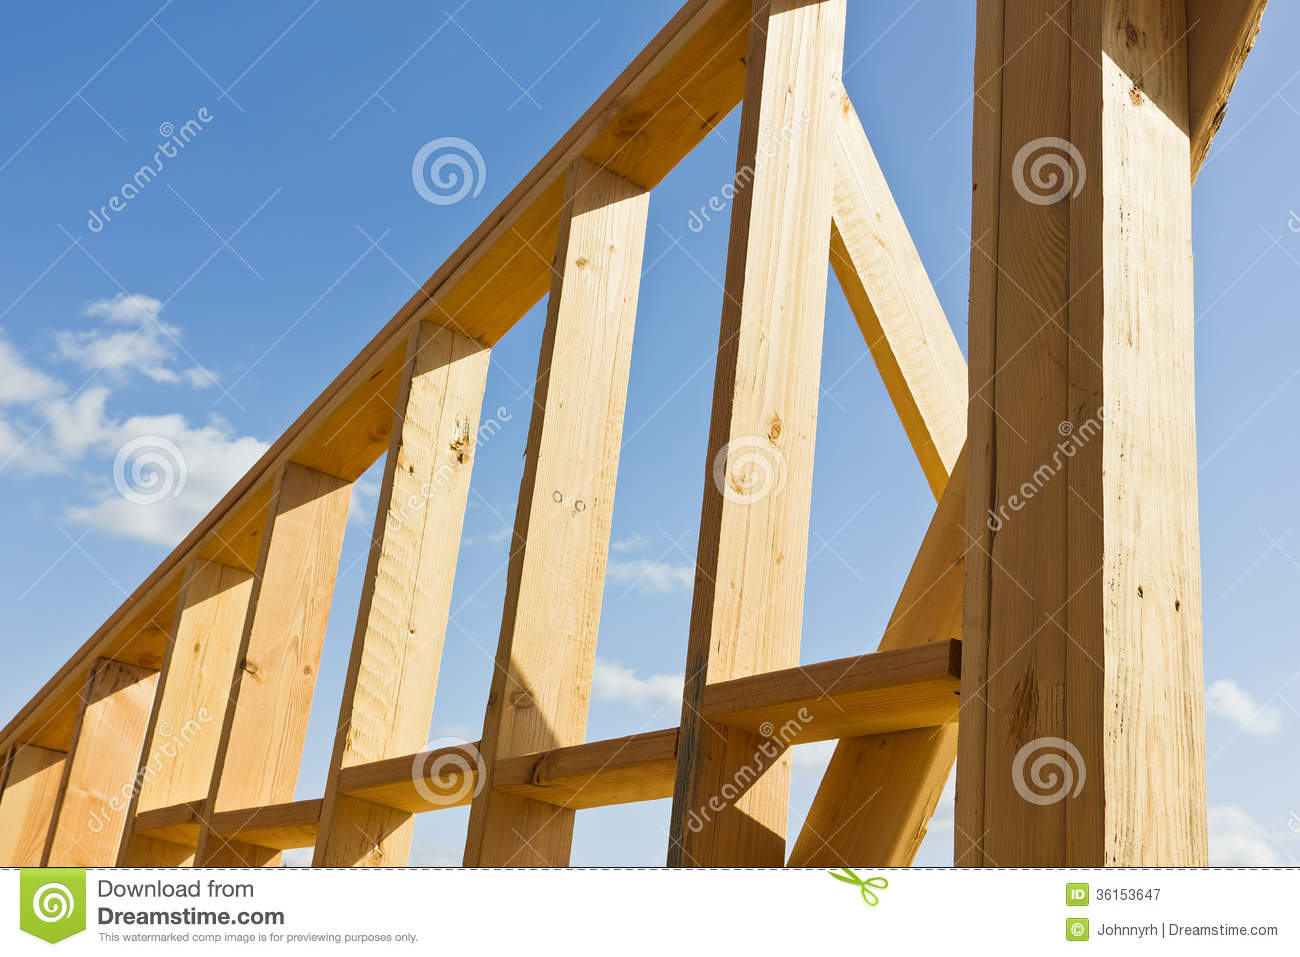 wooden wall frame - Wood Frame Construction